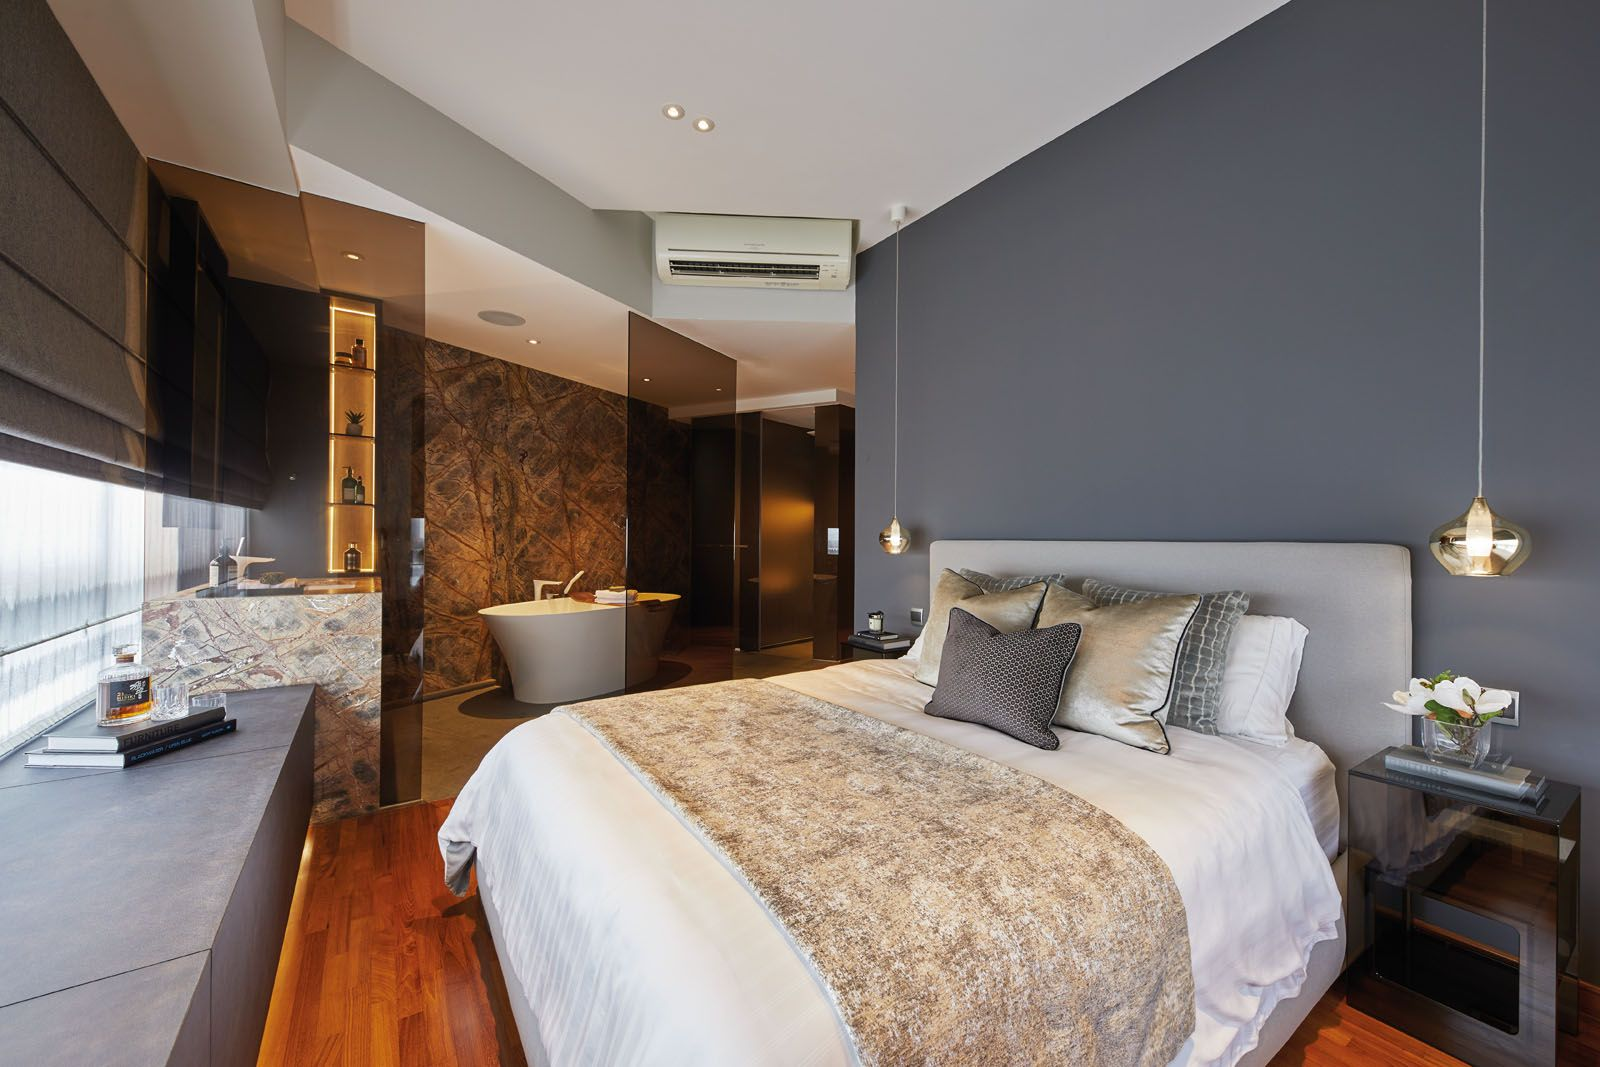 Champagne accents add a touch of glamour to the bedroom